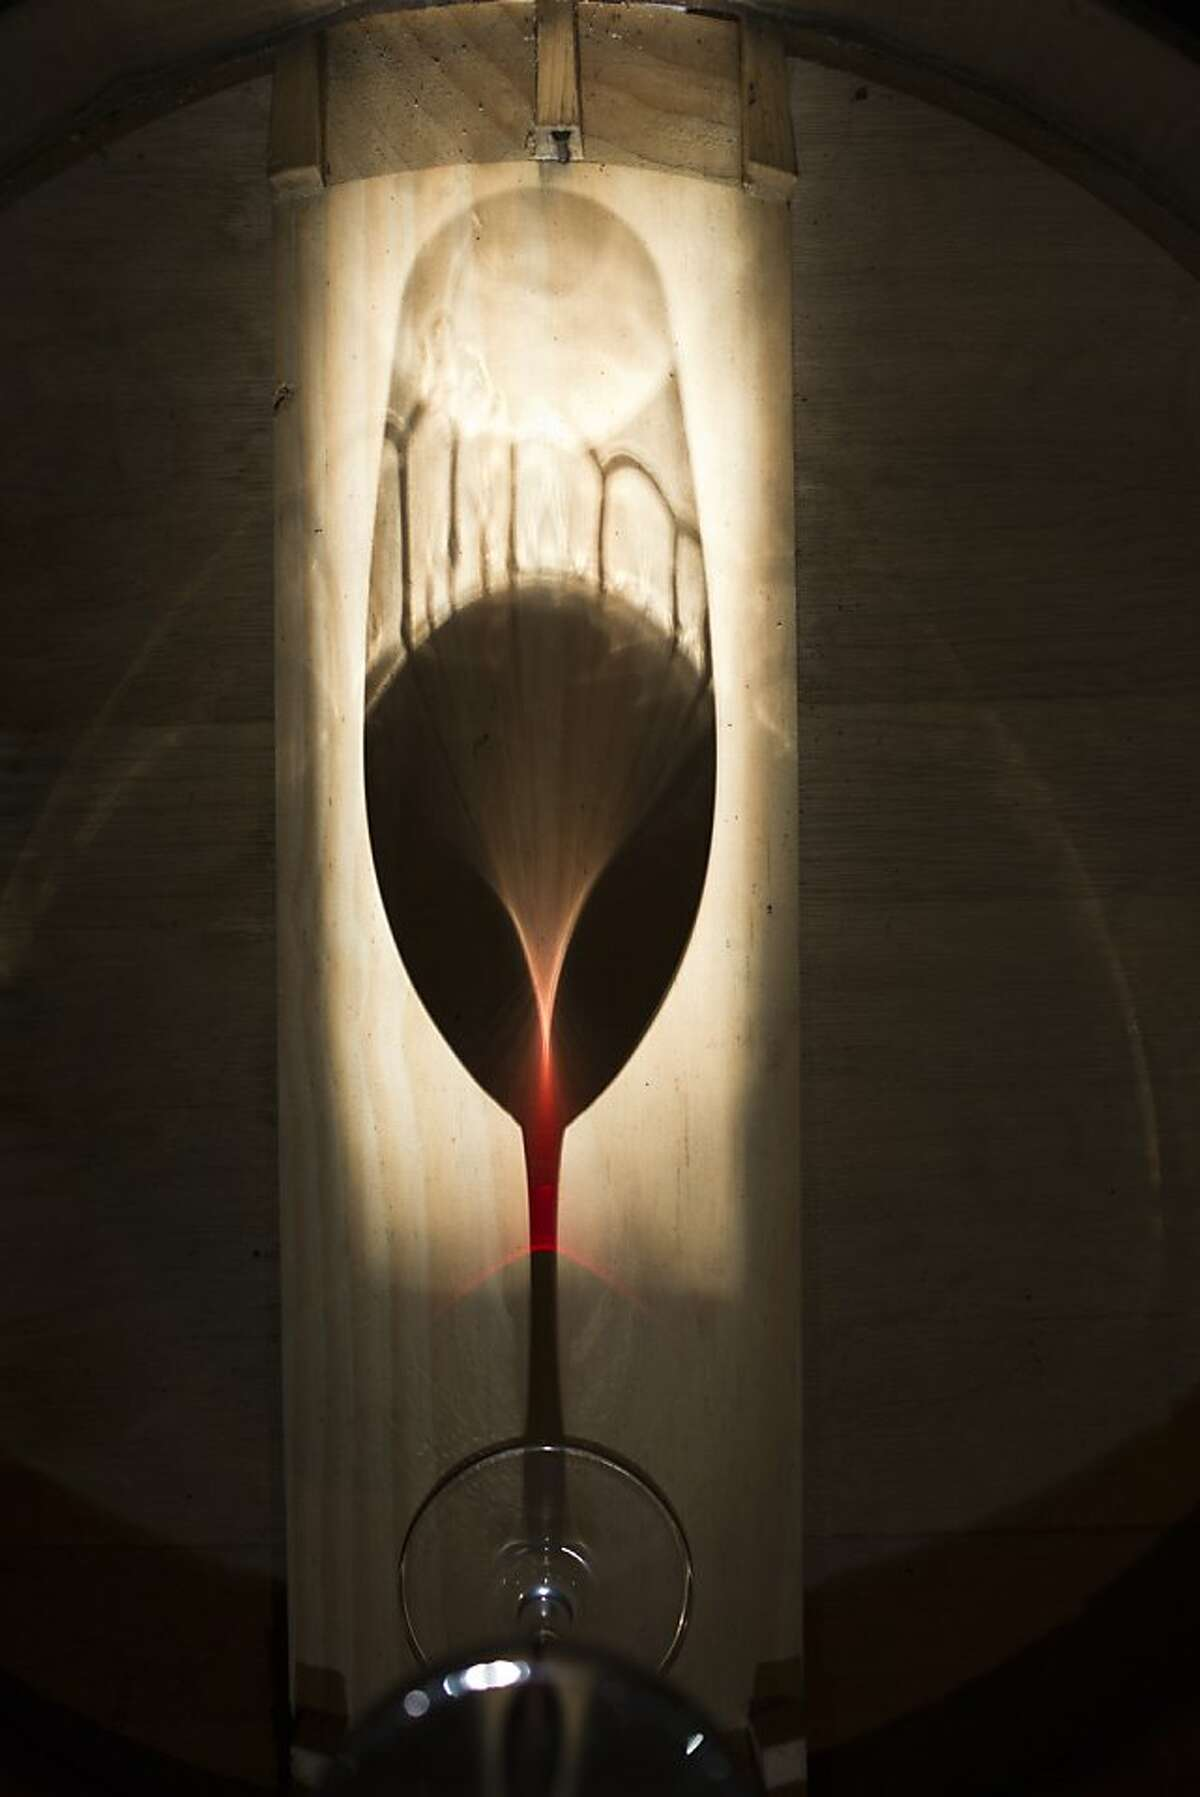 Light shines through a glass of Farella syrah at Farella Vineyards in Coombsville, Calif., Thursday, August 15, 2013.